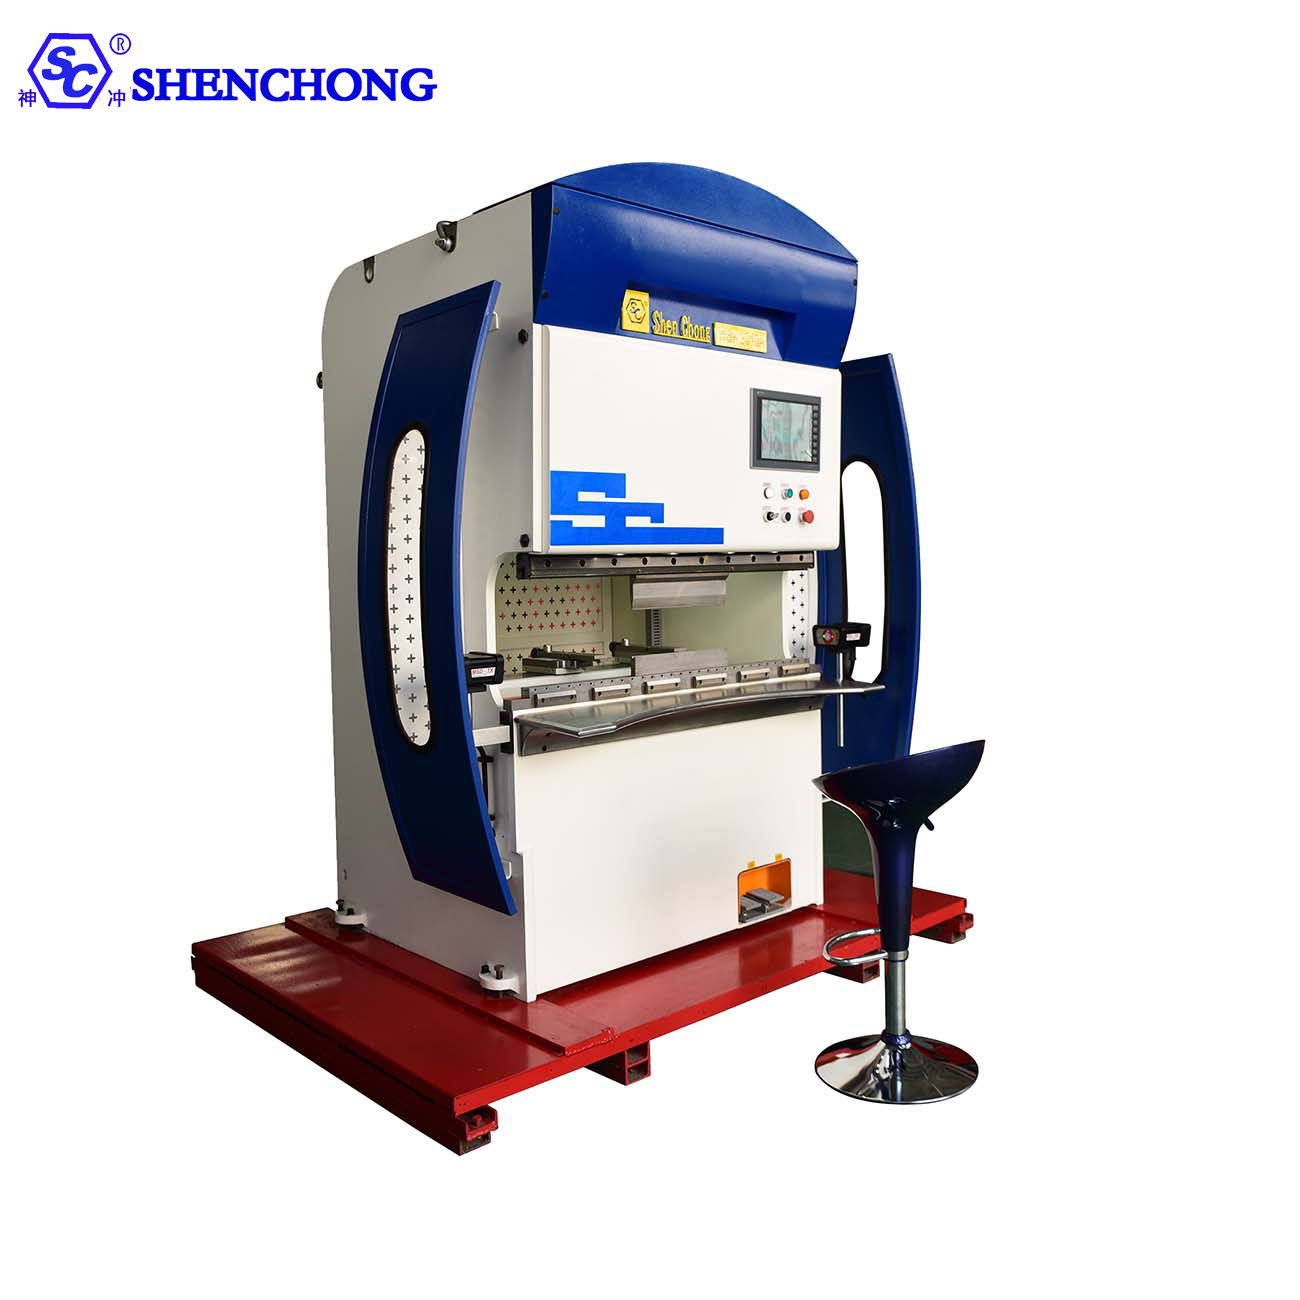 Mesin press rem cnc mesin bending kecil mini tekan rem